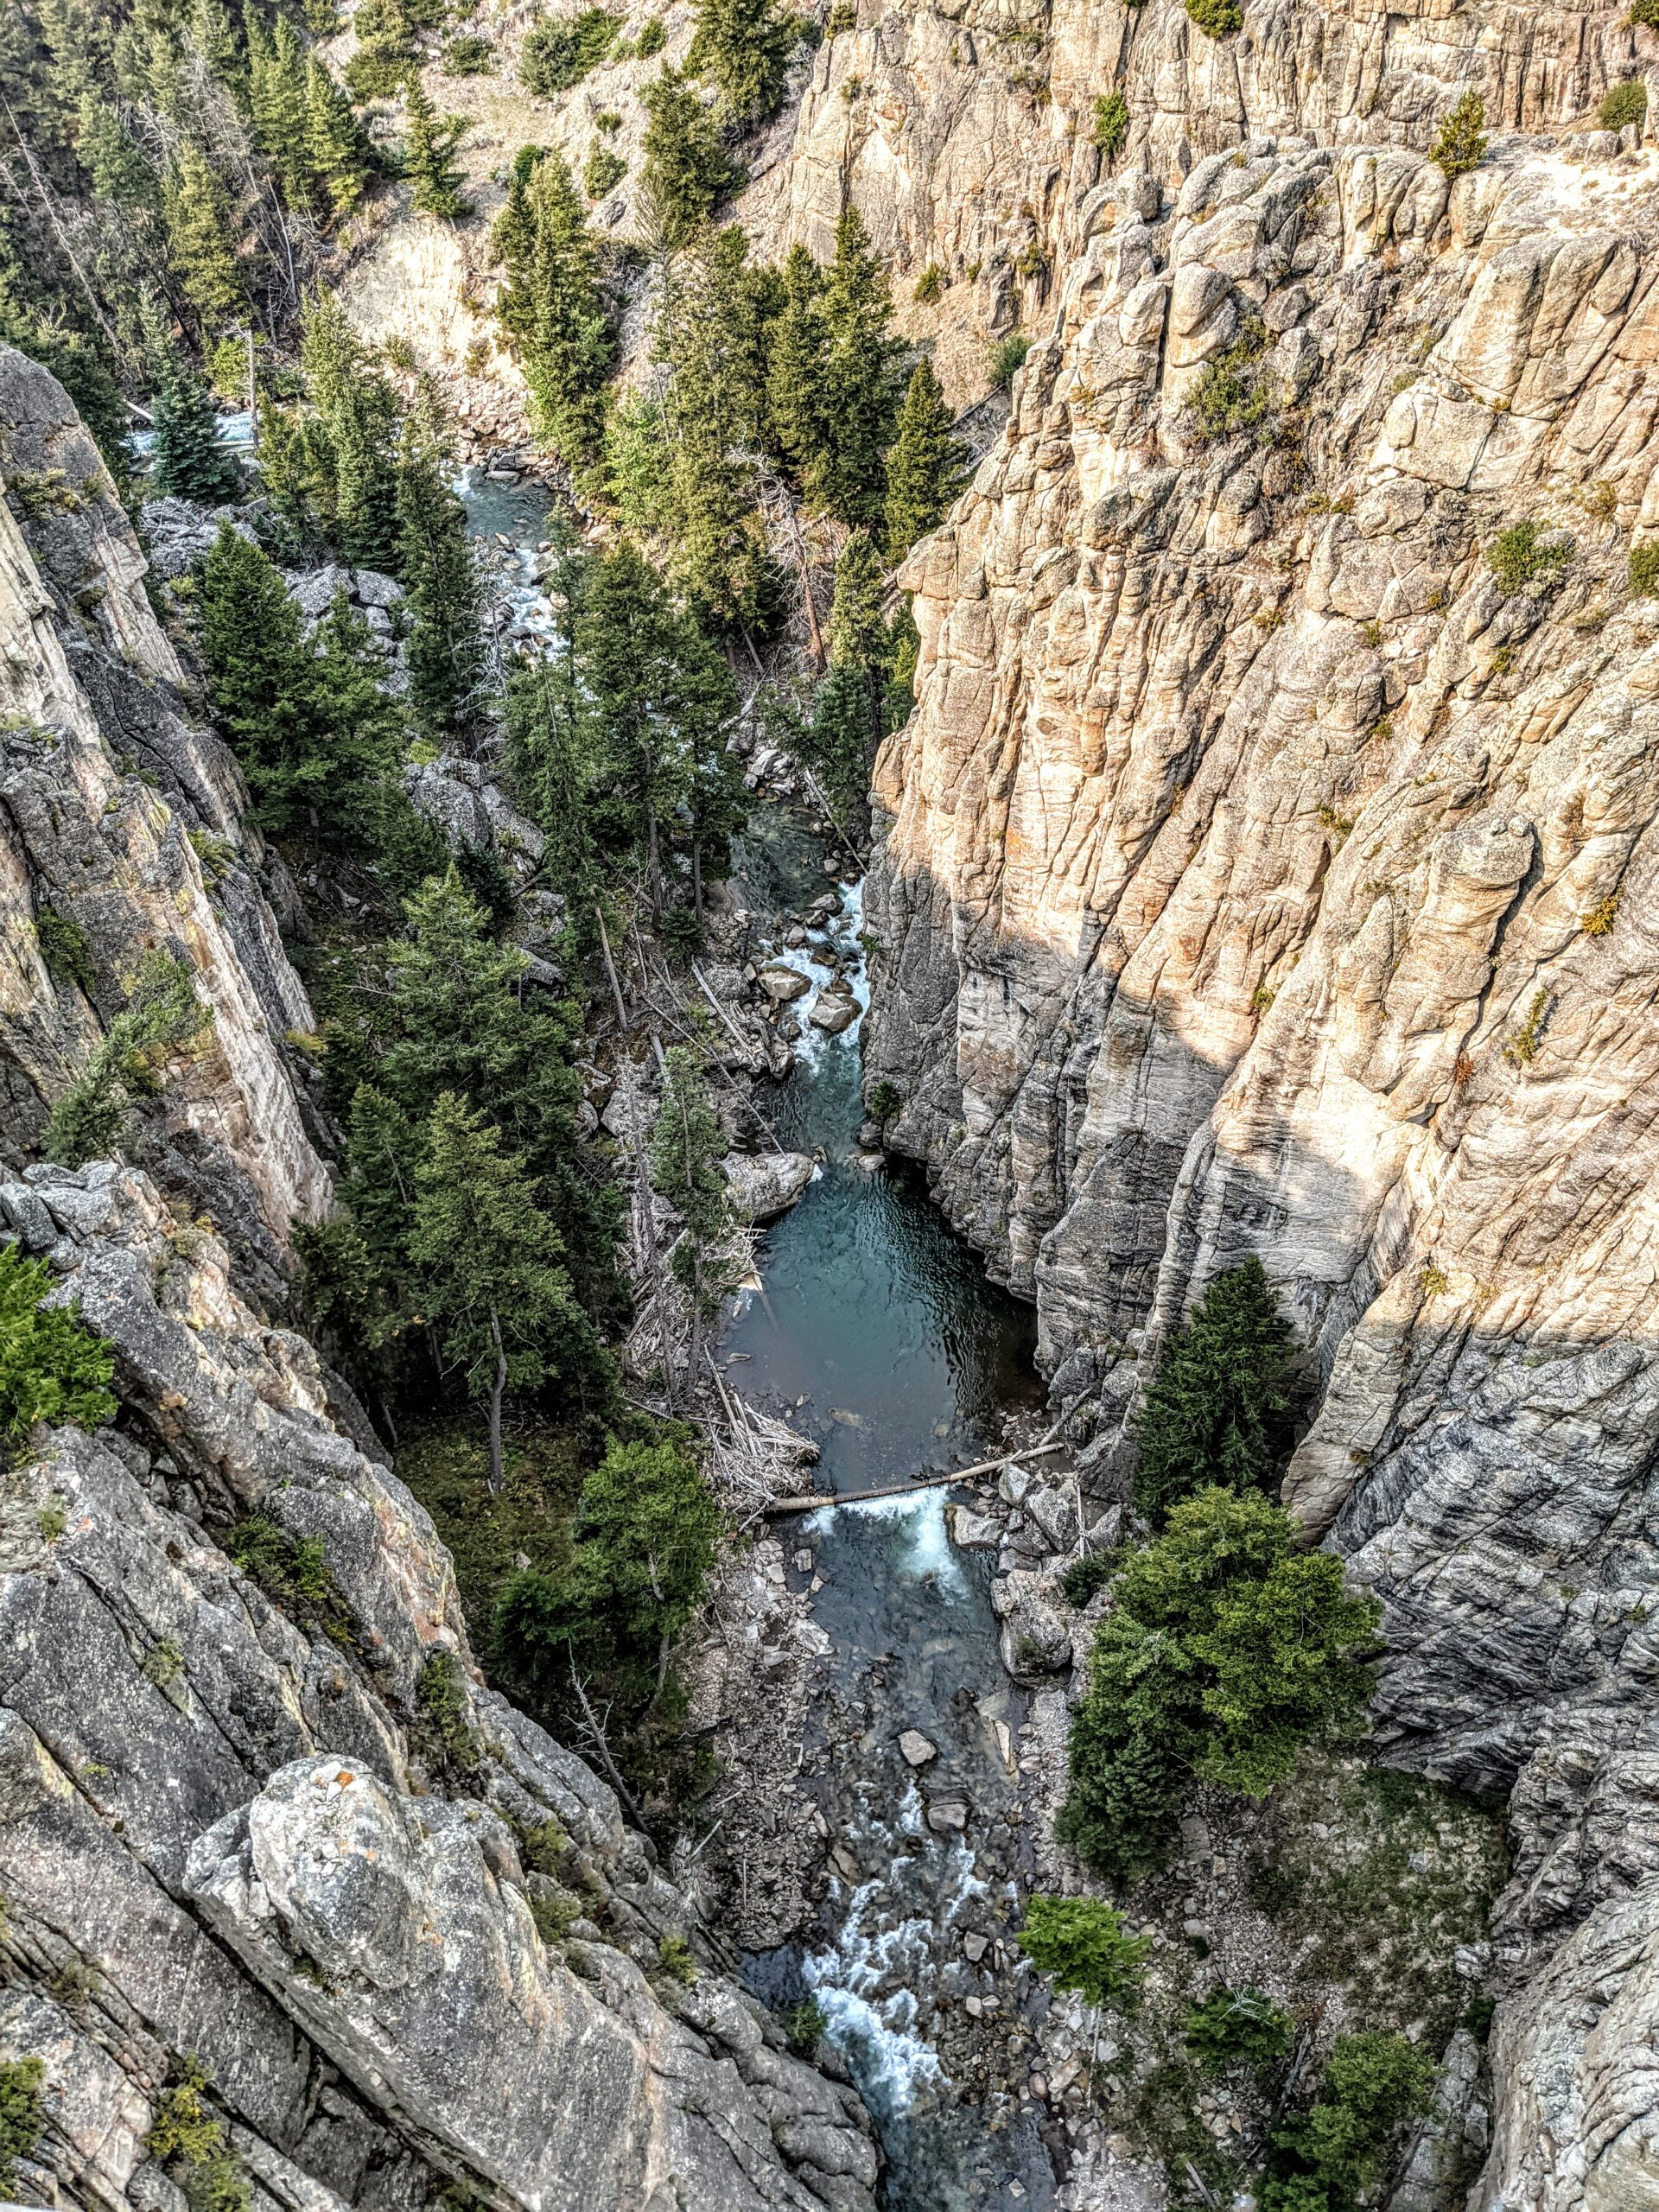 Clarks Fork Canyon along the Chief Joseph Scenic Byway outside Cody Wyoming.